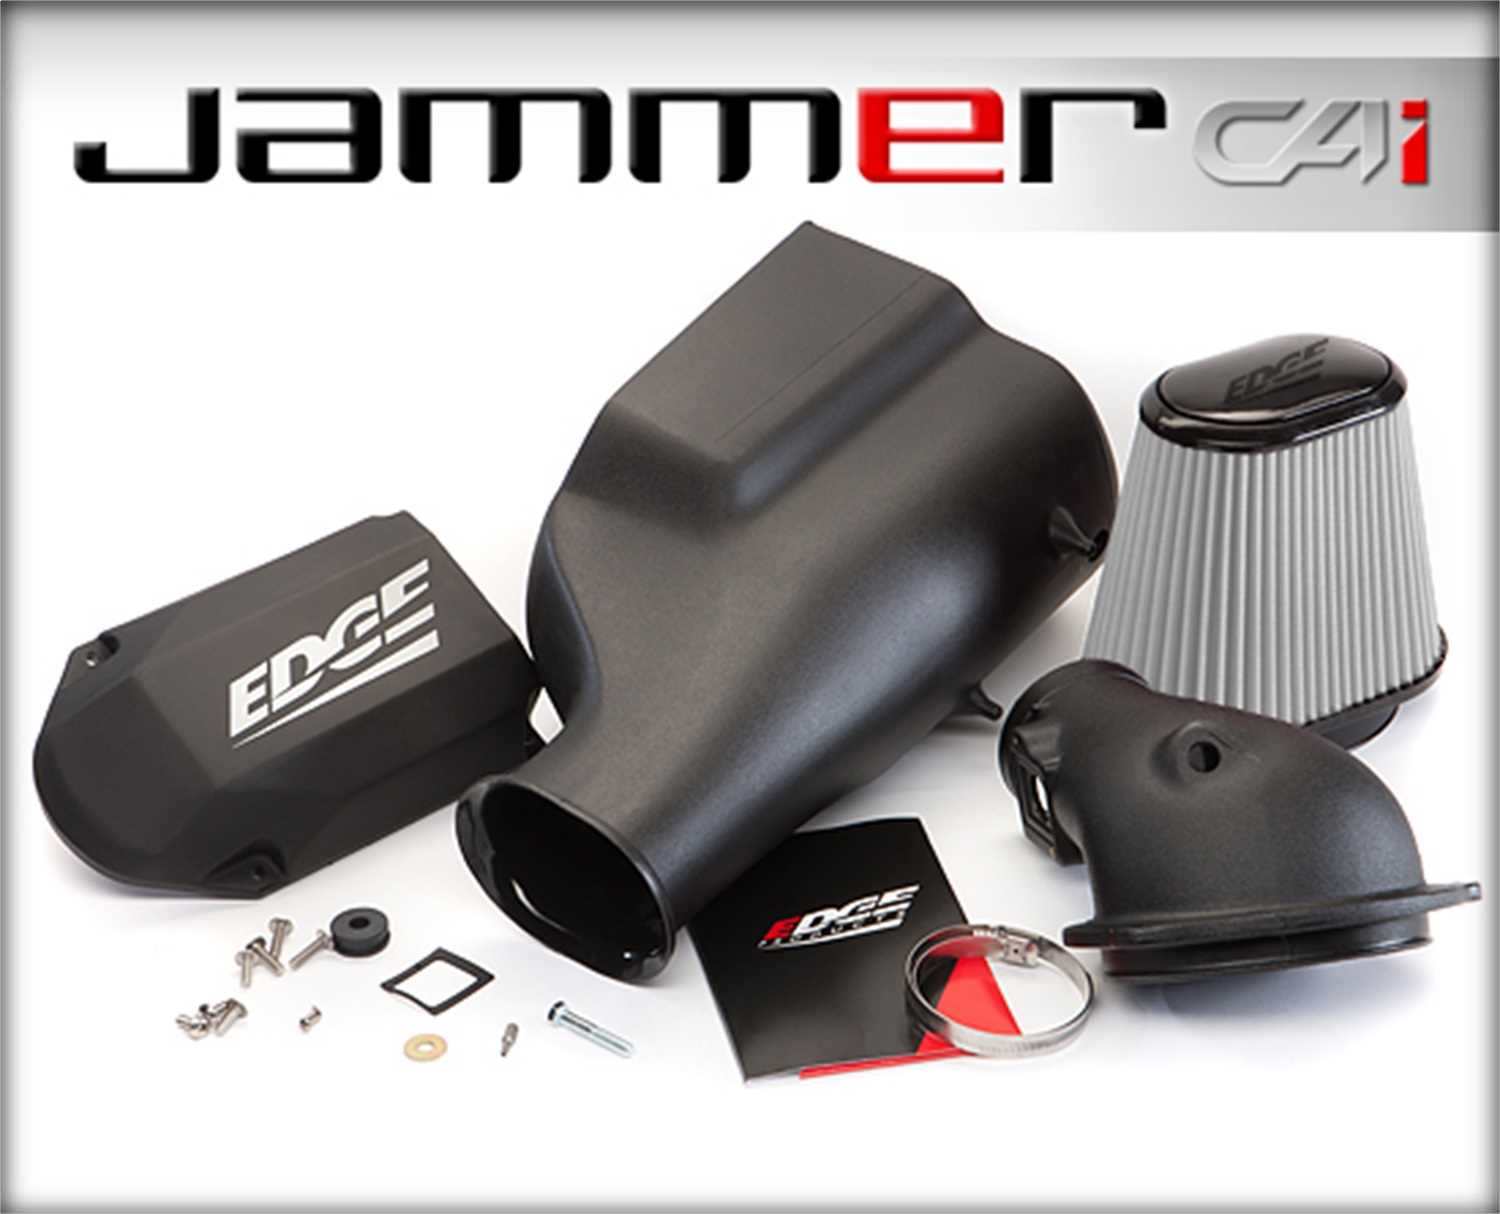 18155-D Edge Products Jammer Cold Air Intake